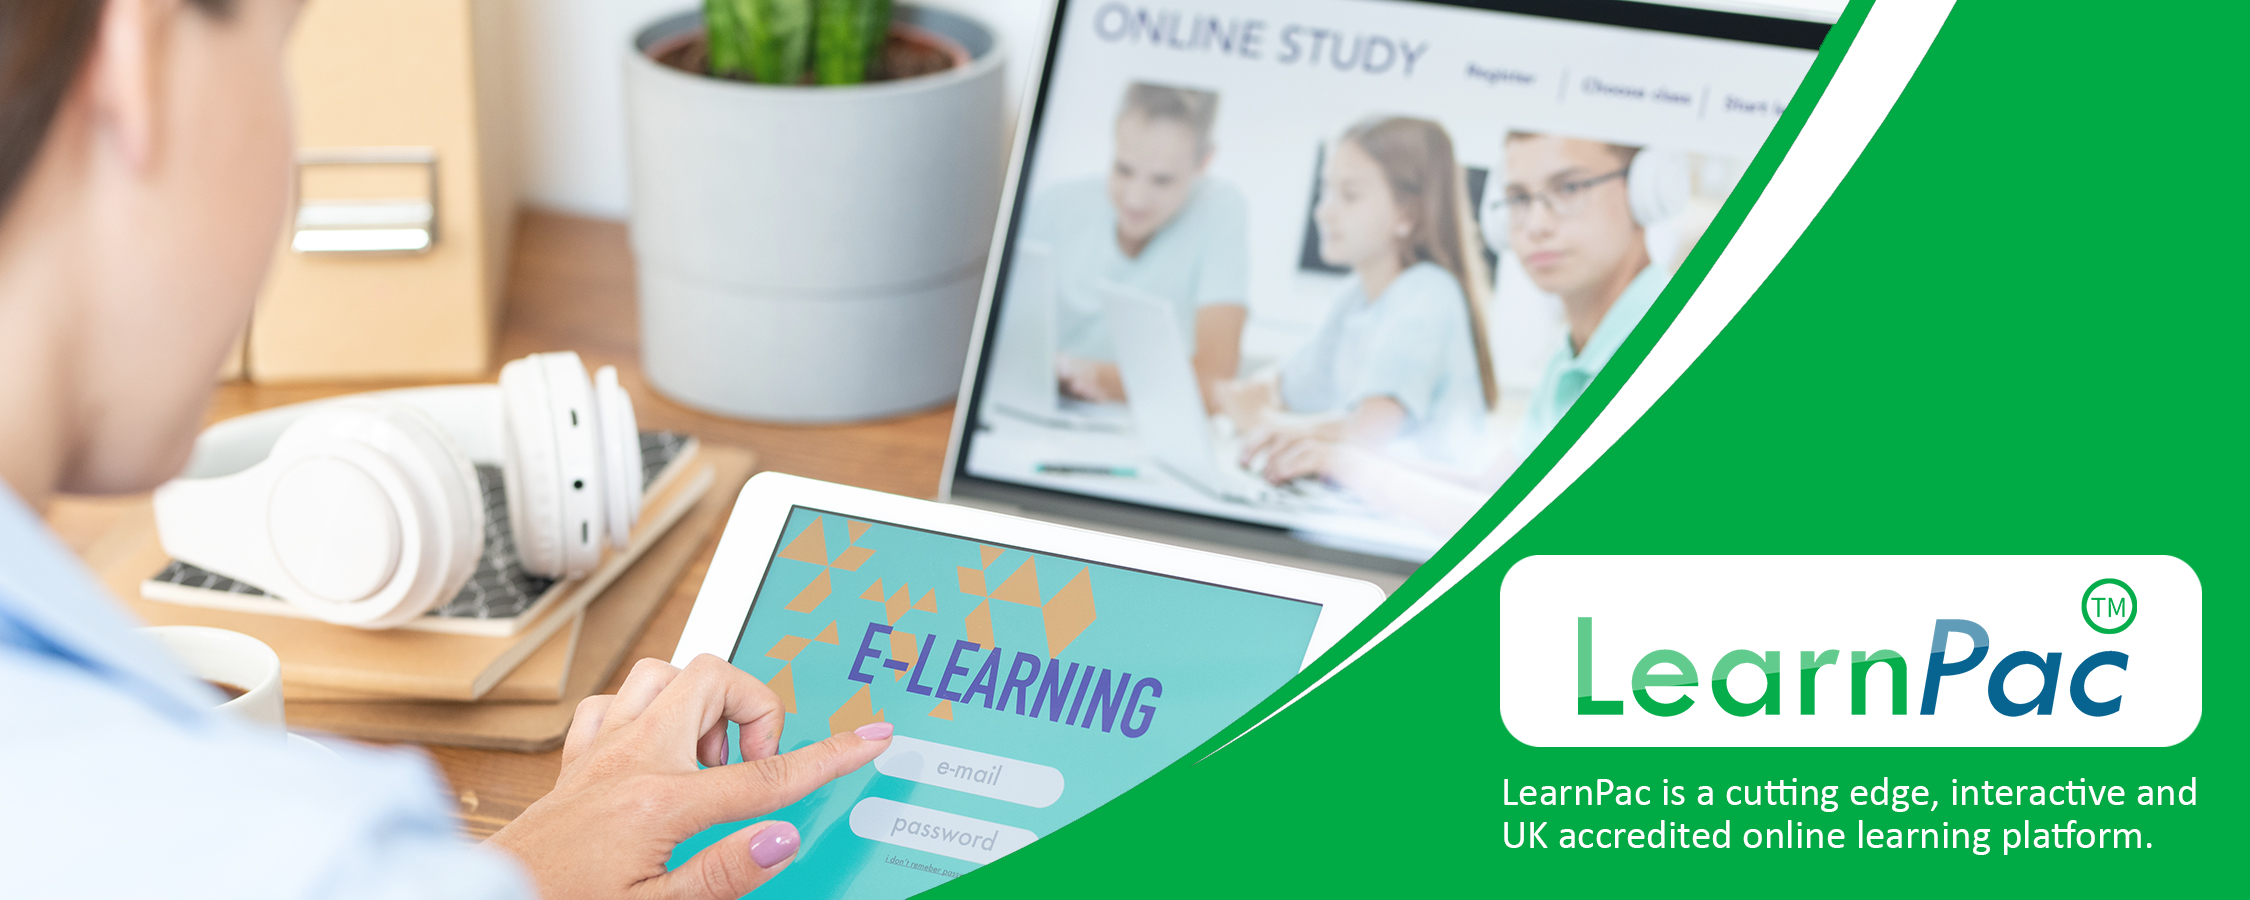 Learning Disability Awareness - Online Learning Courses - E-Learning Courses - LearnPac Systems UK -